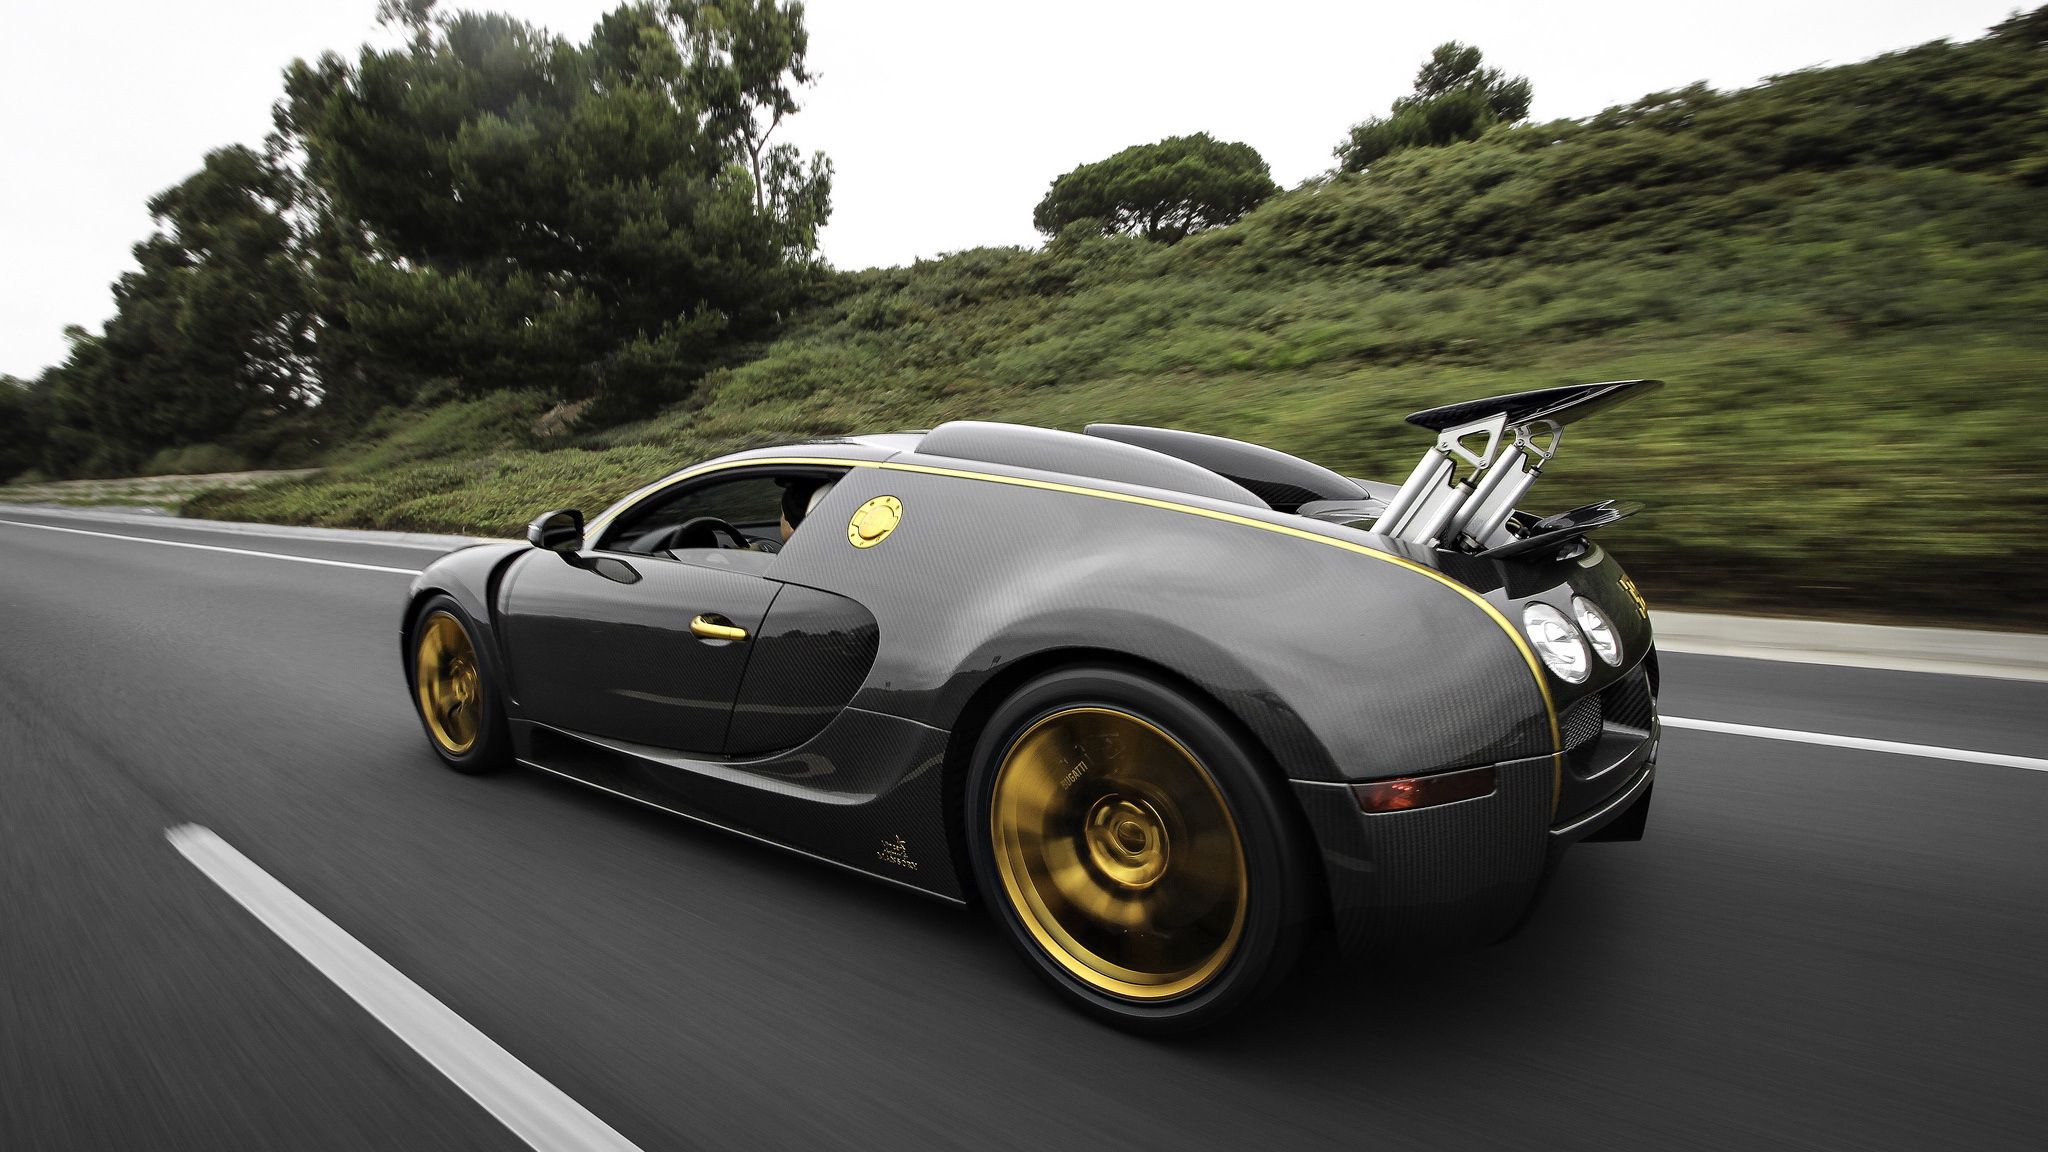 95785 download wallpaper Bugatti, Cars, Side View, Veyron screensavers and pictures for free